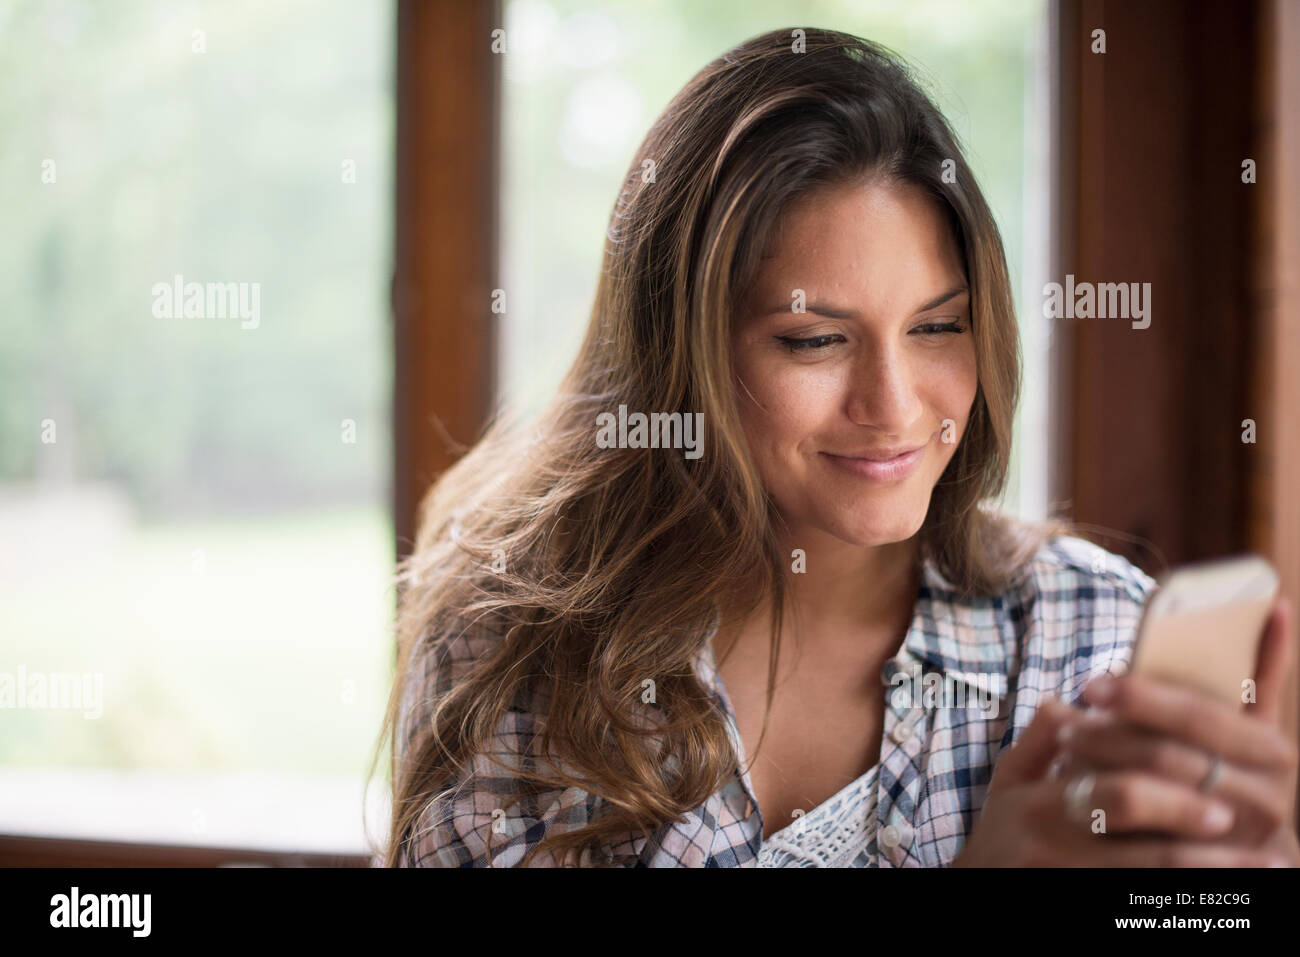 A woman sitting by a window, looking at her cell phone. - Stock Image